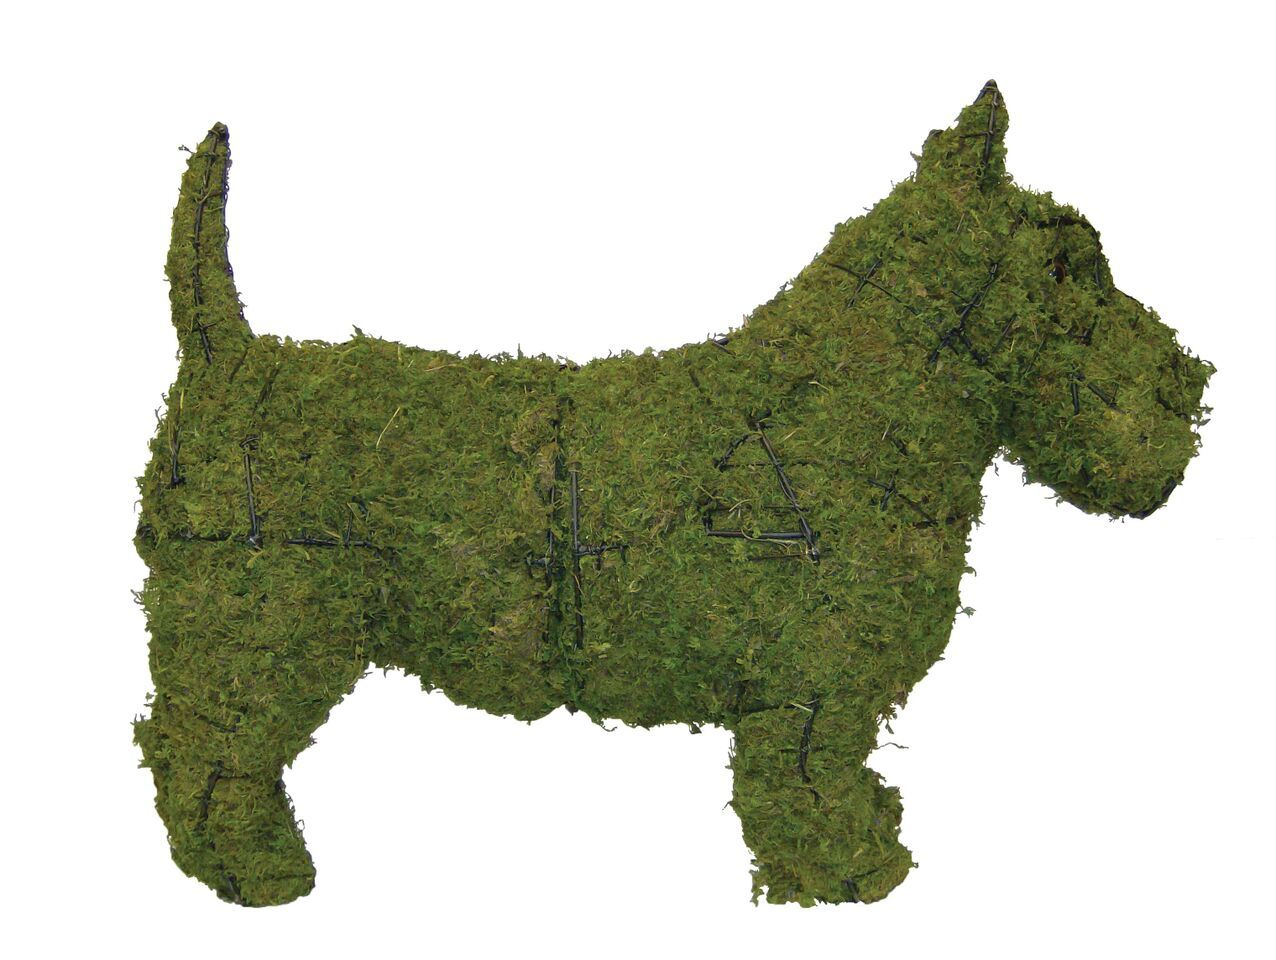 Scottie steel topiary frame filled with green dyed sphagnum moss - Henderson Garden Supply